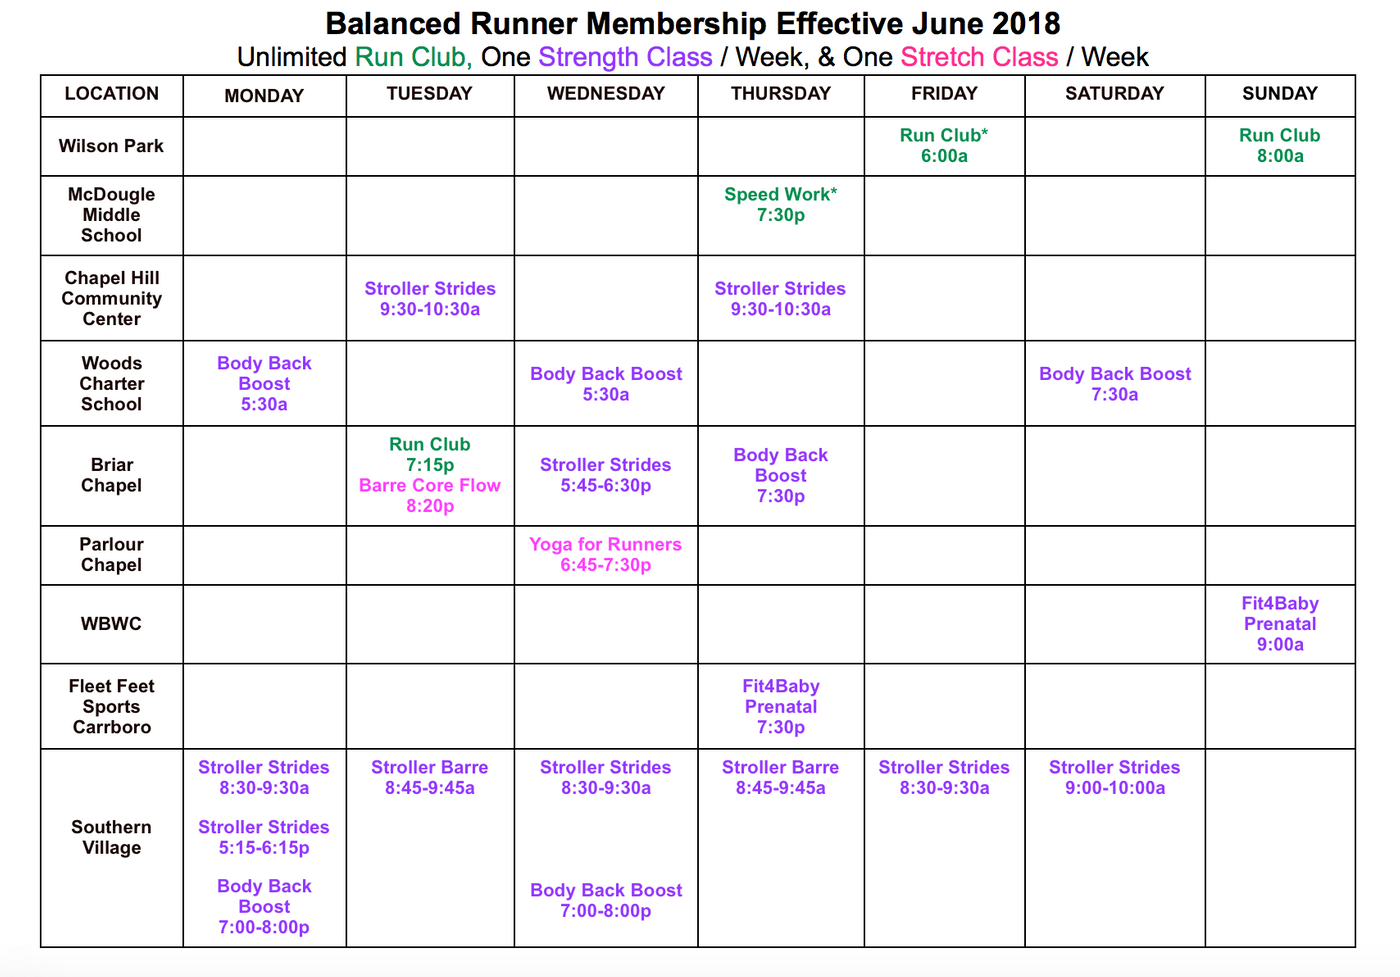 Balanced Runner Membership Effective 2018.png